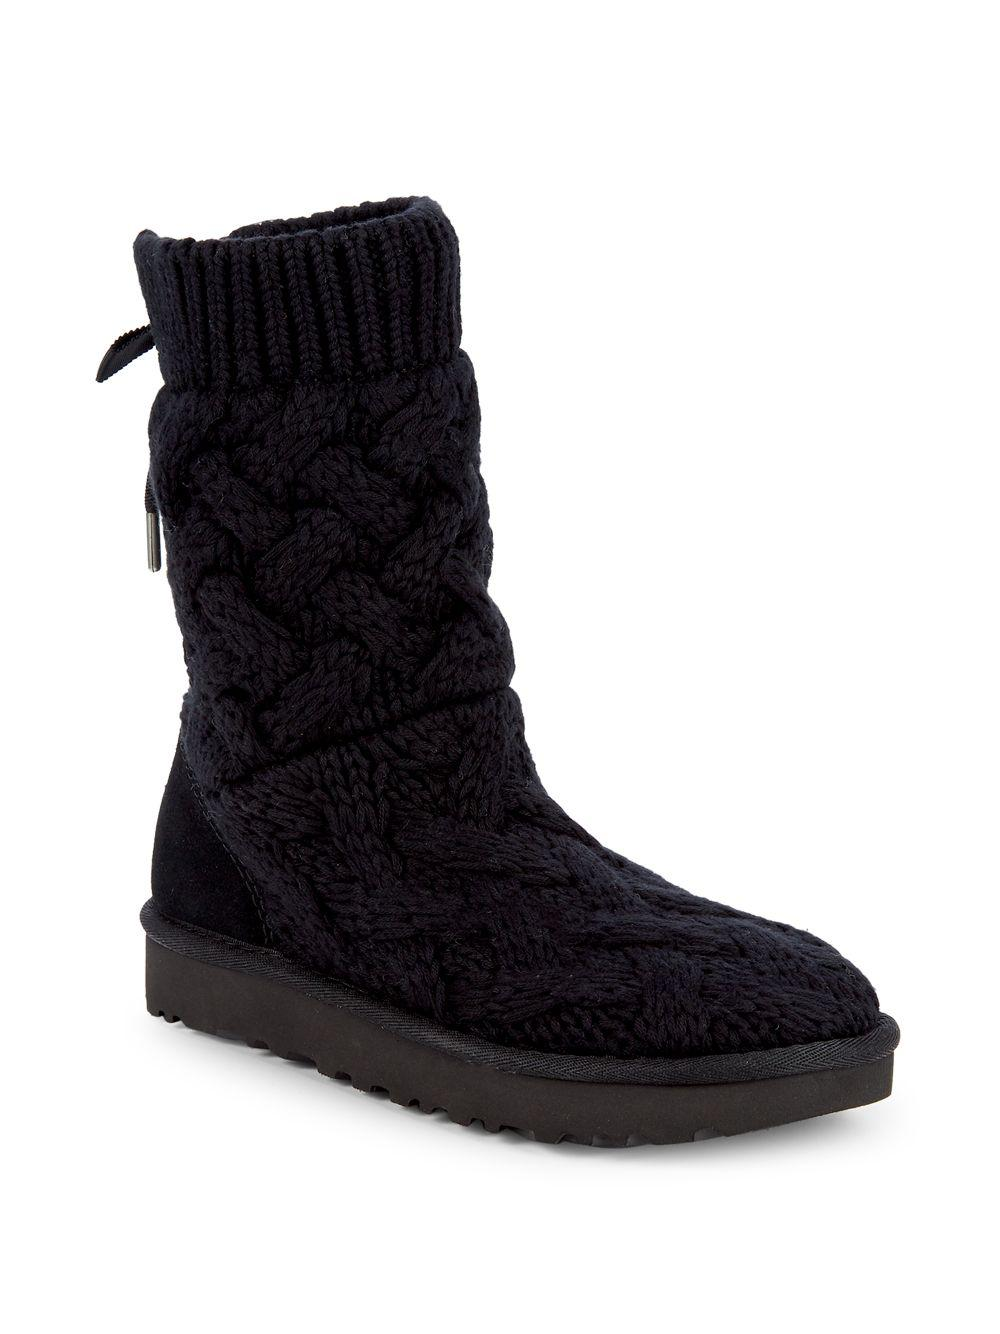 2be626ca103 top quality isla knit ugg boots 28a8d baac6